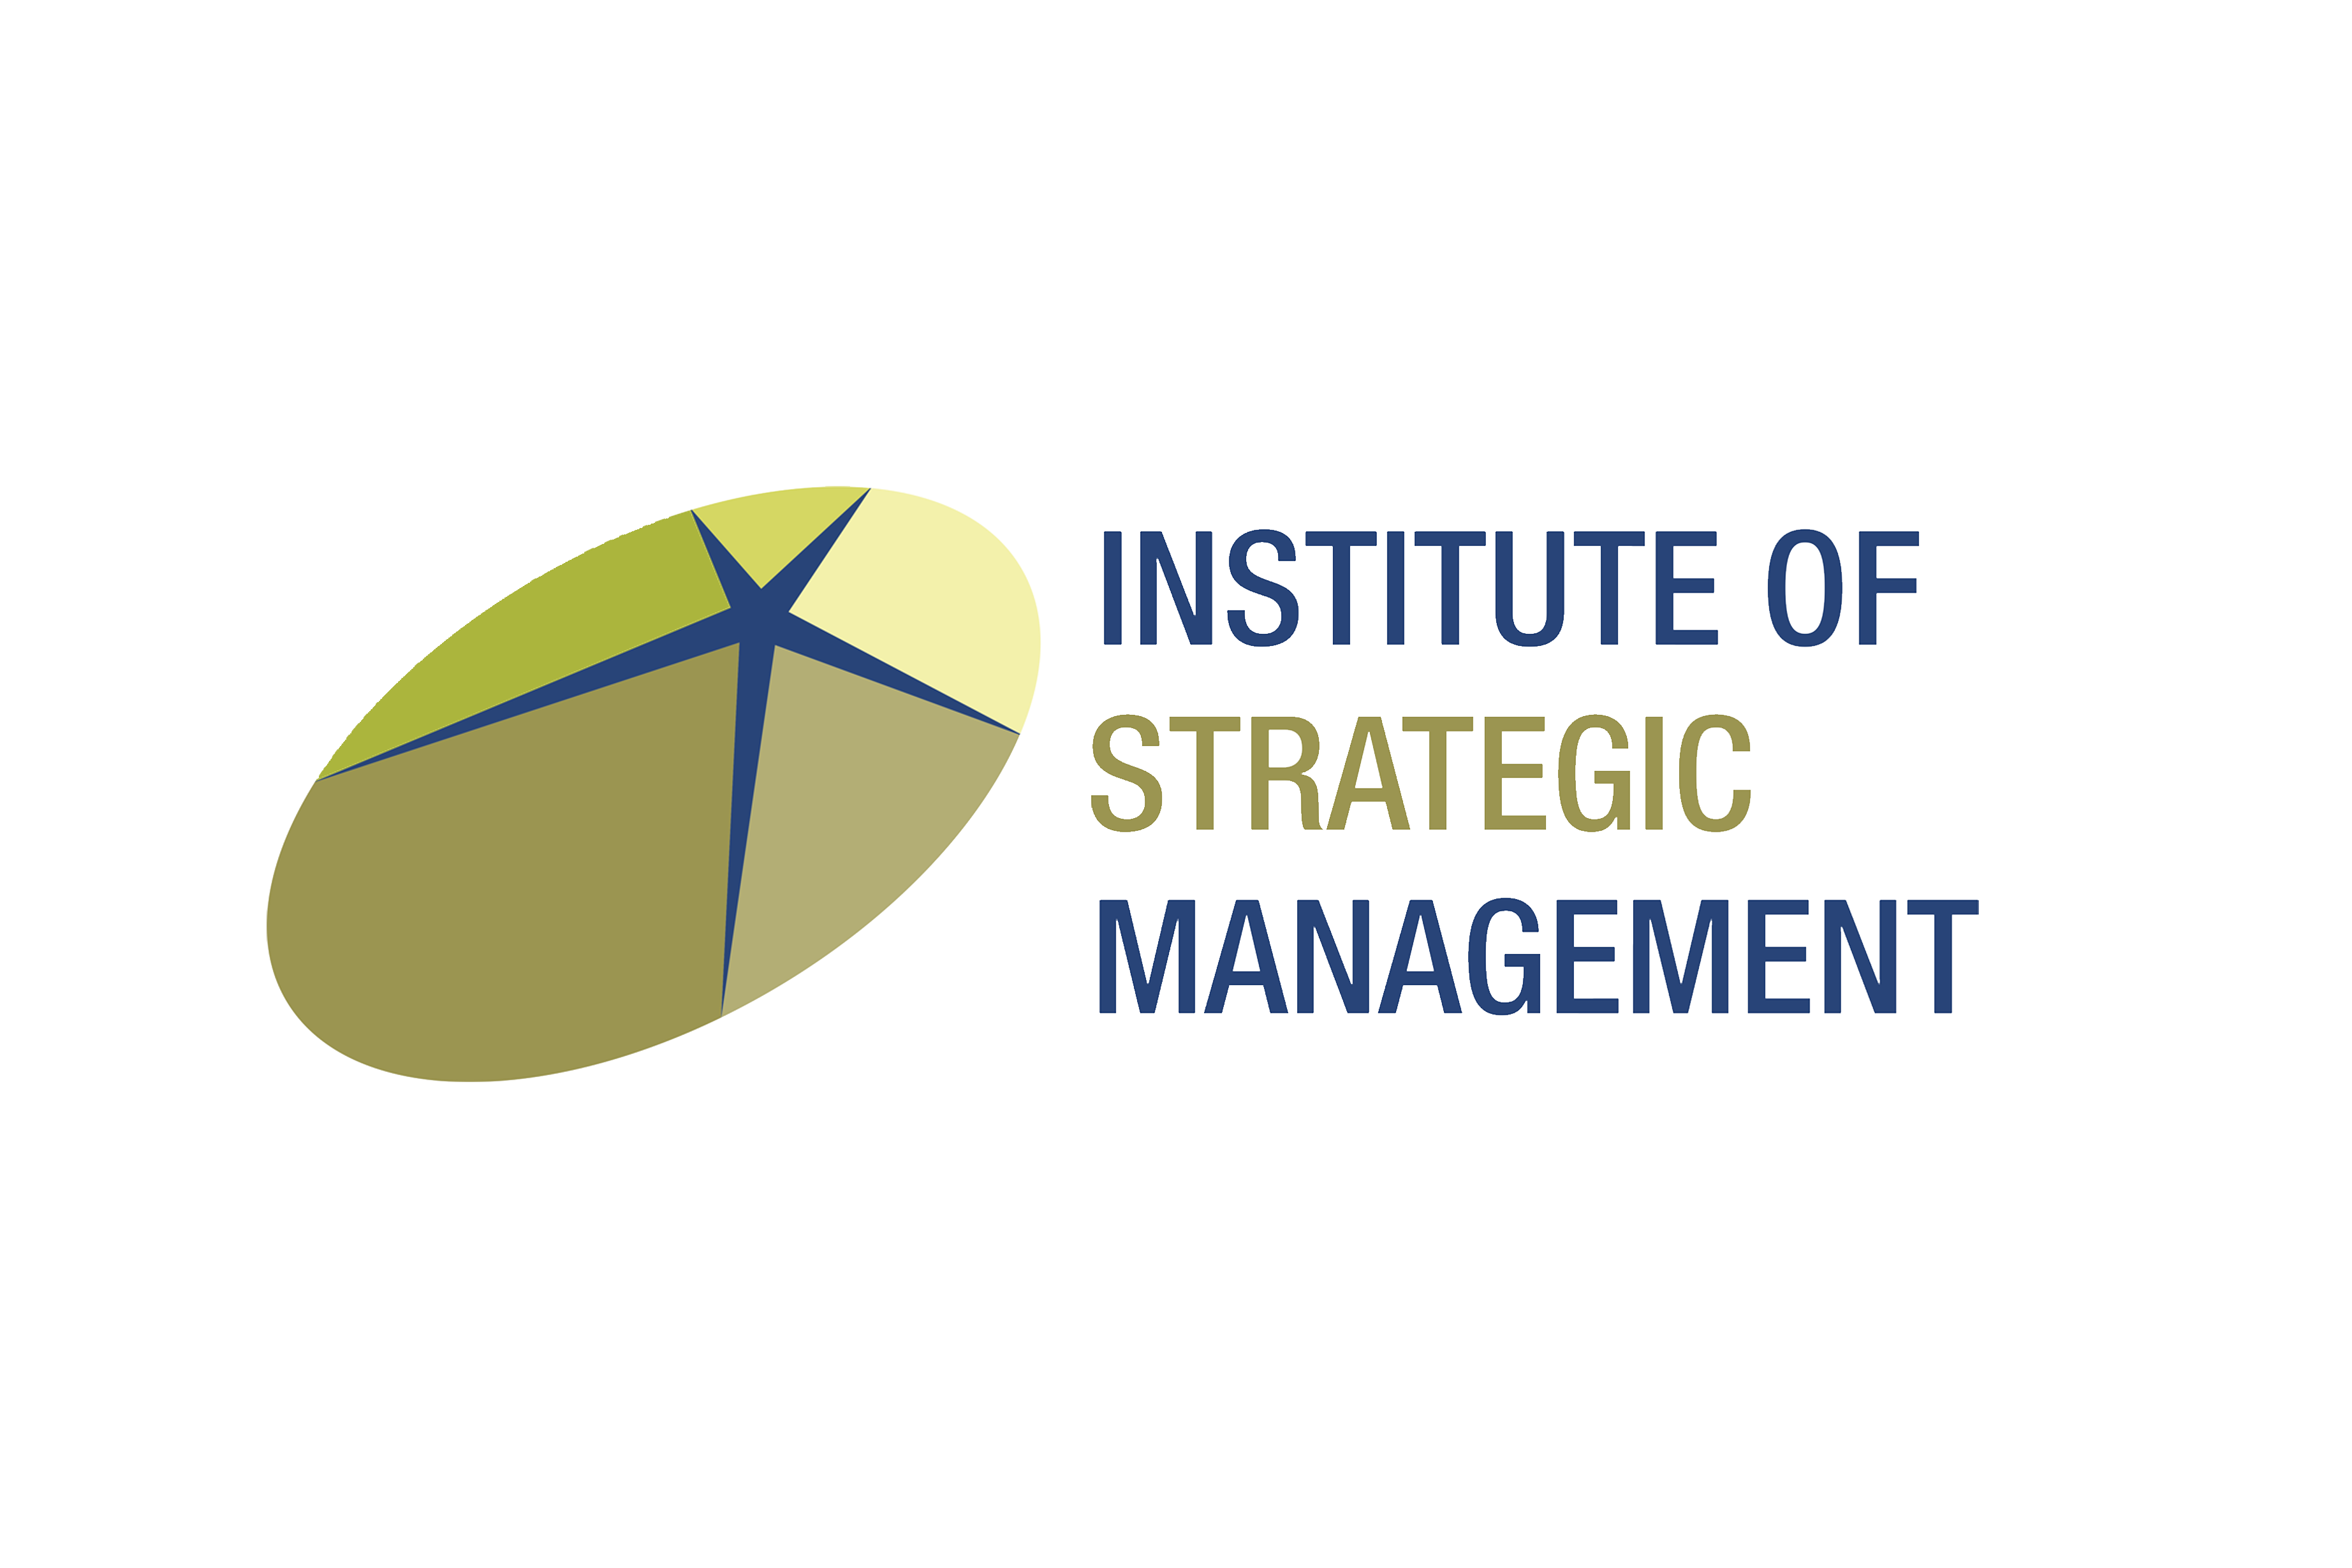 ISM_logo clear background